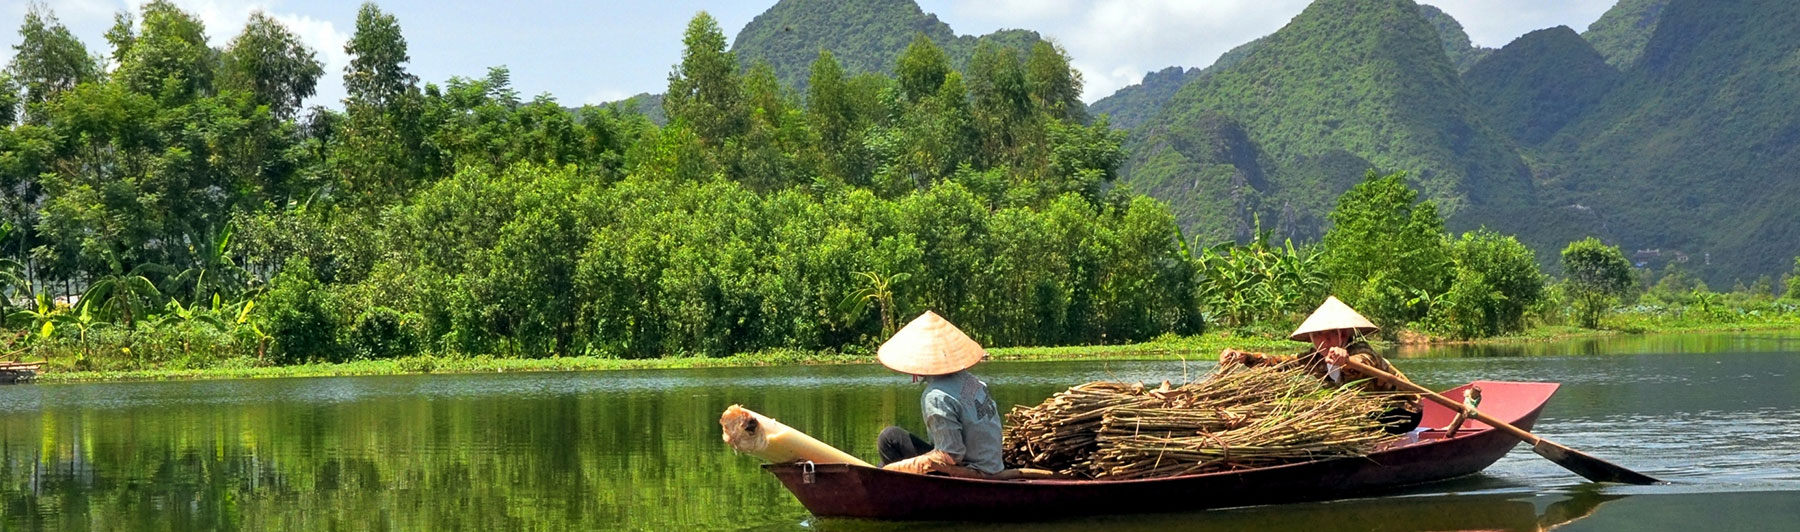 Mekong Delta Vietnam - Top Things to Do and Places to Visit